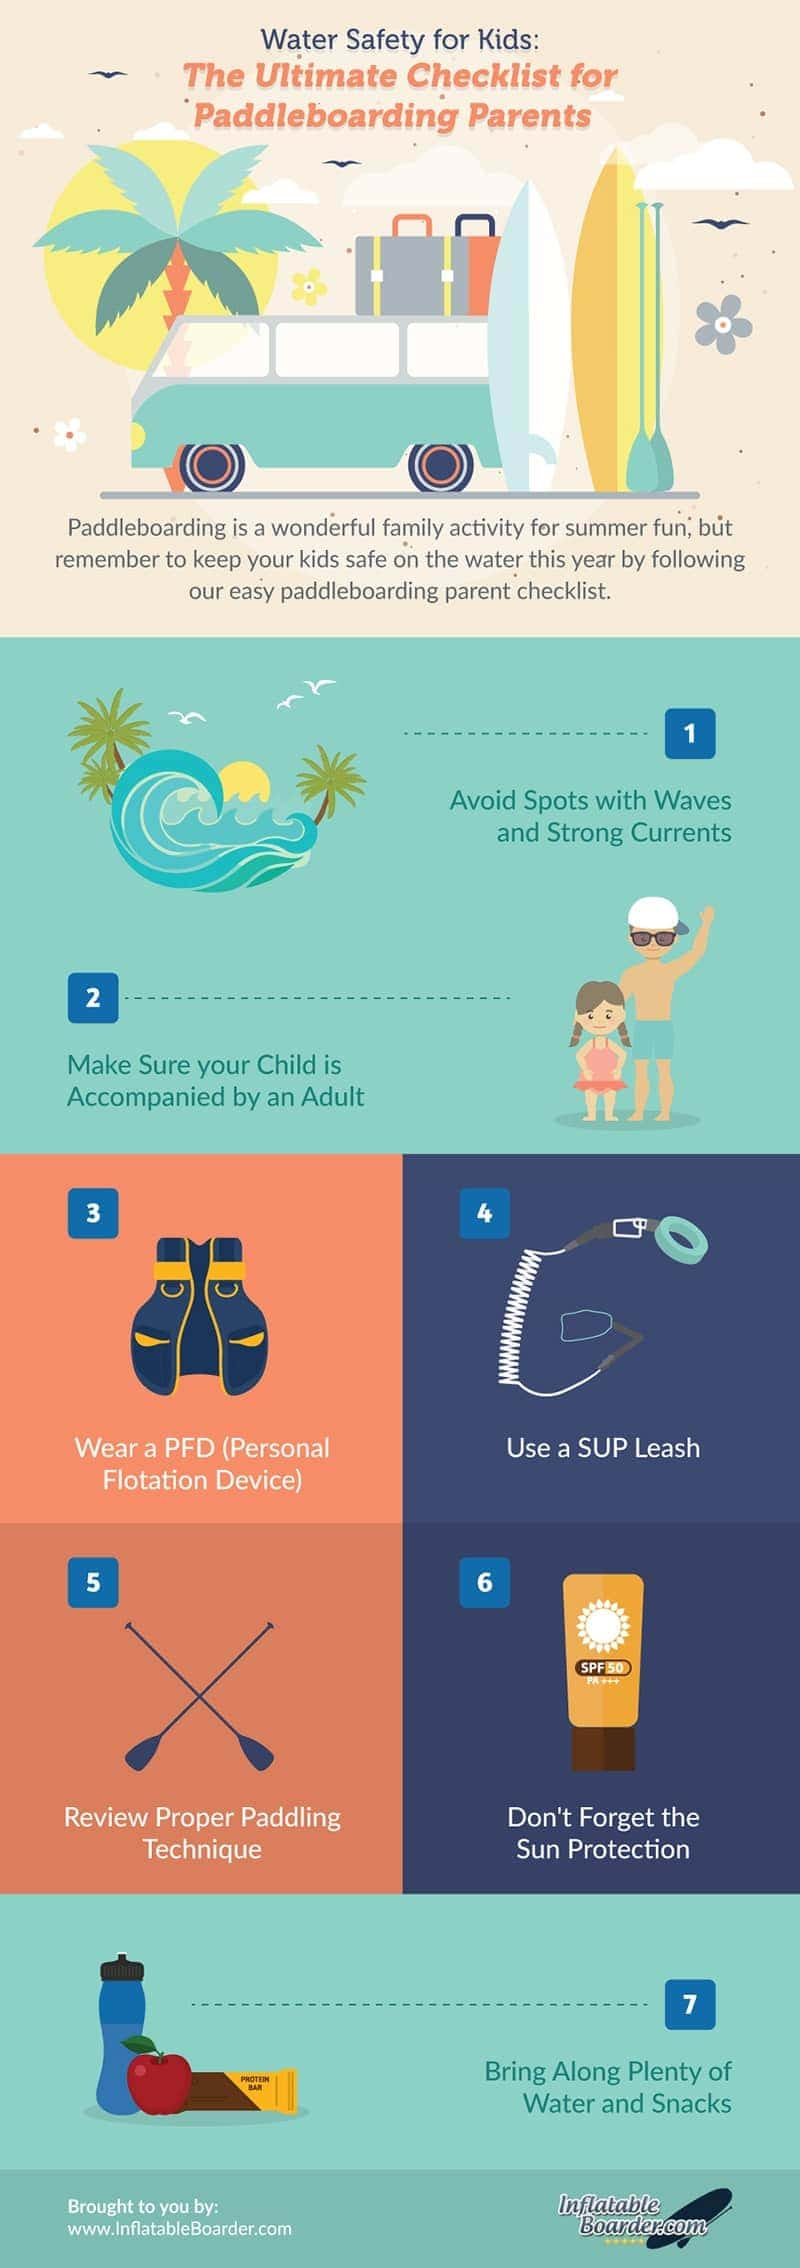 Water Safety for Kids Infographic